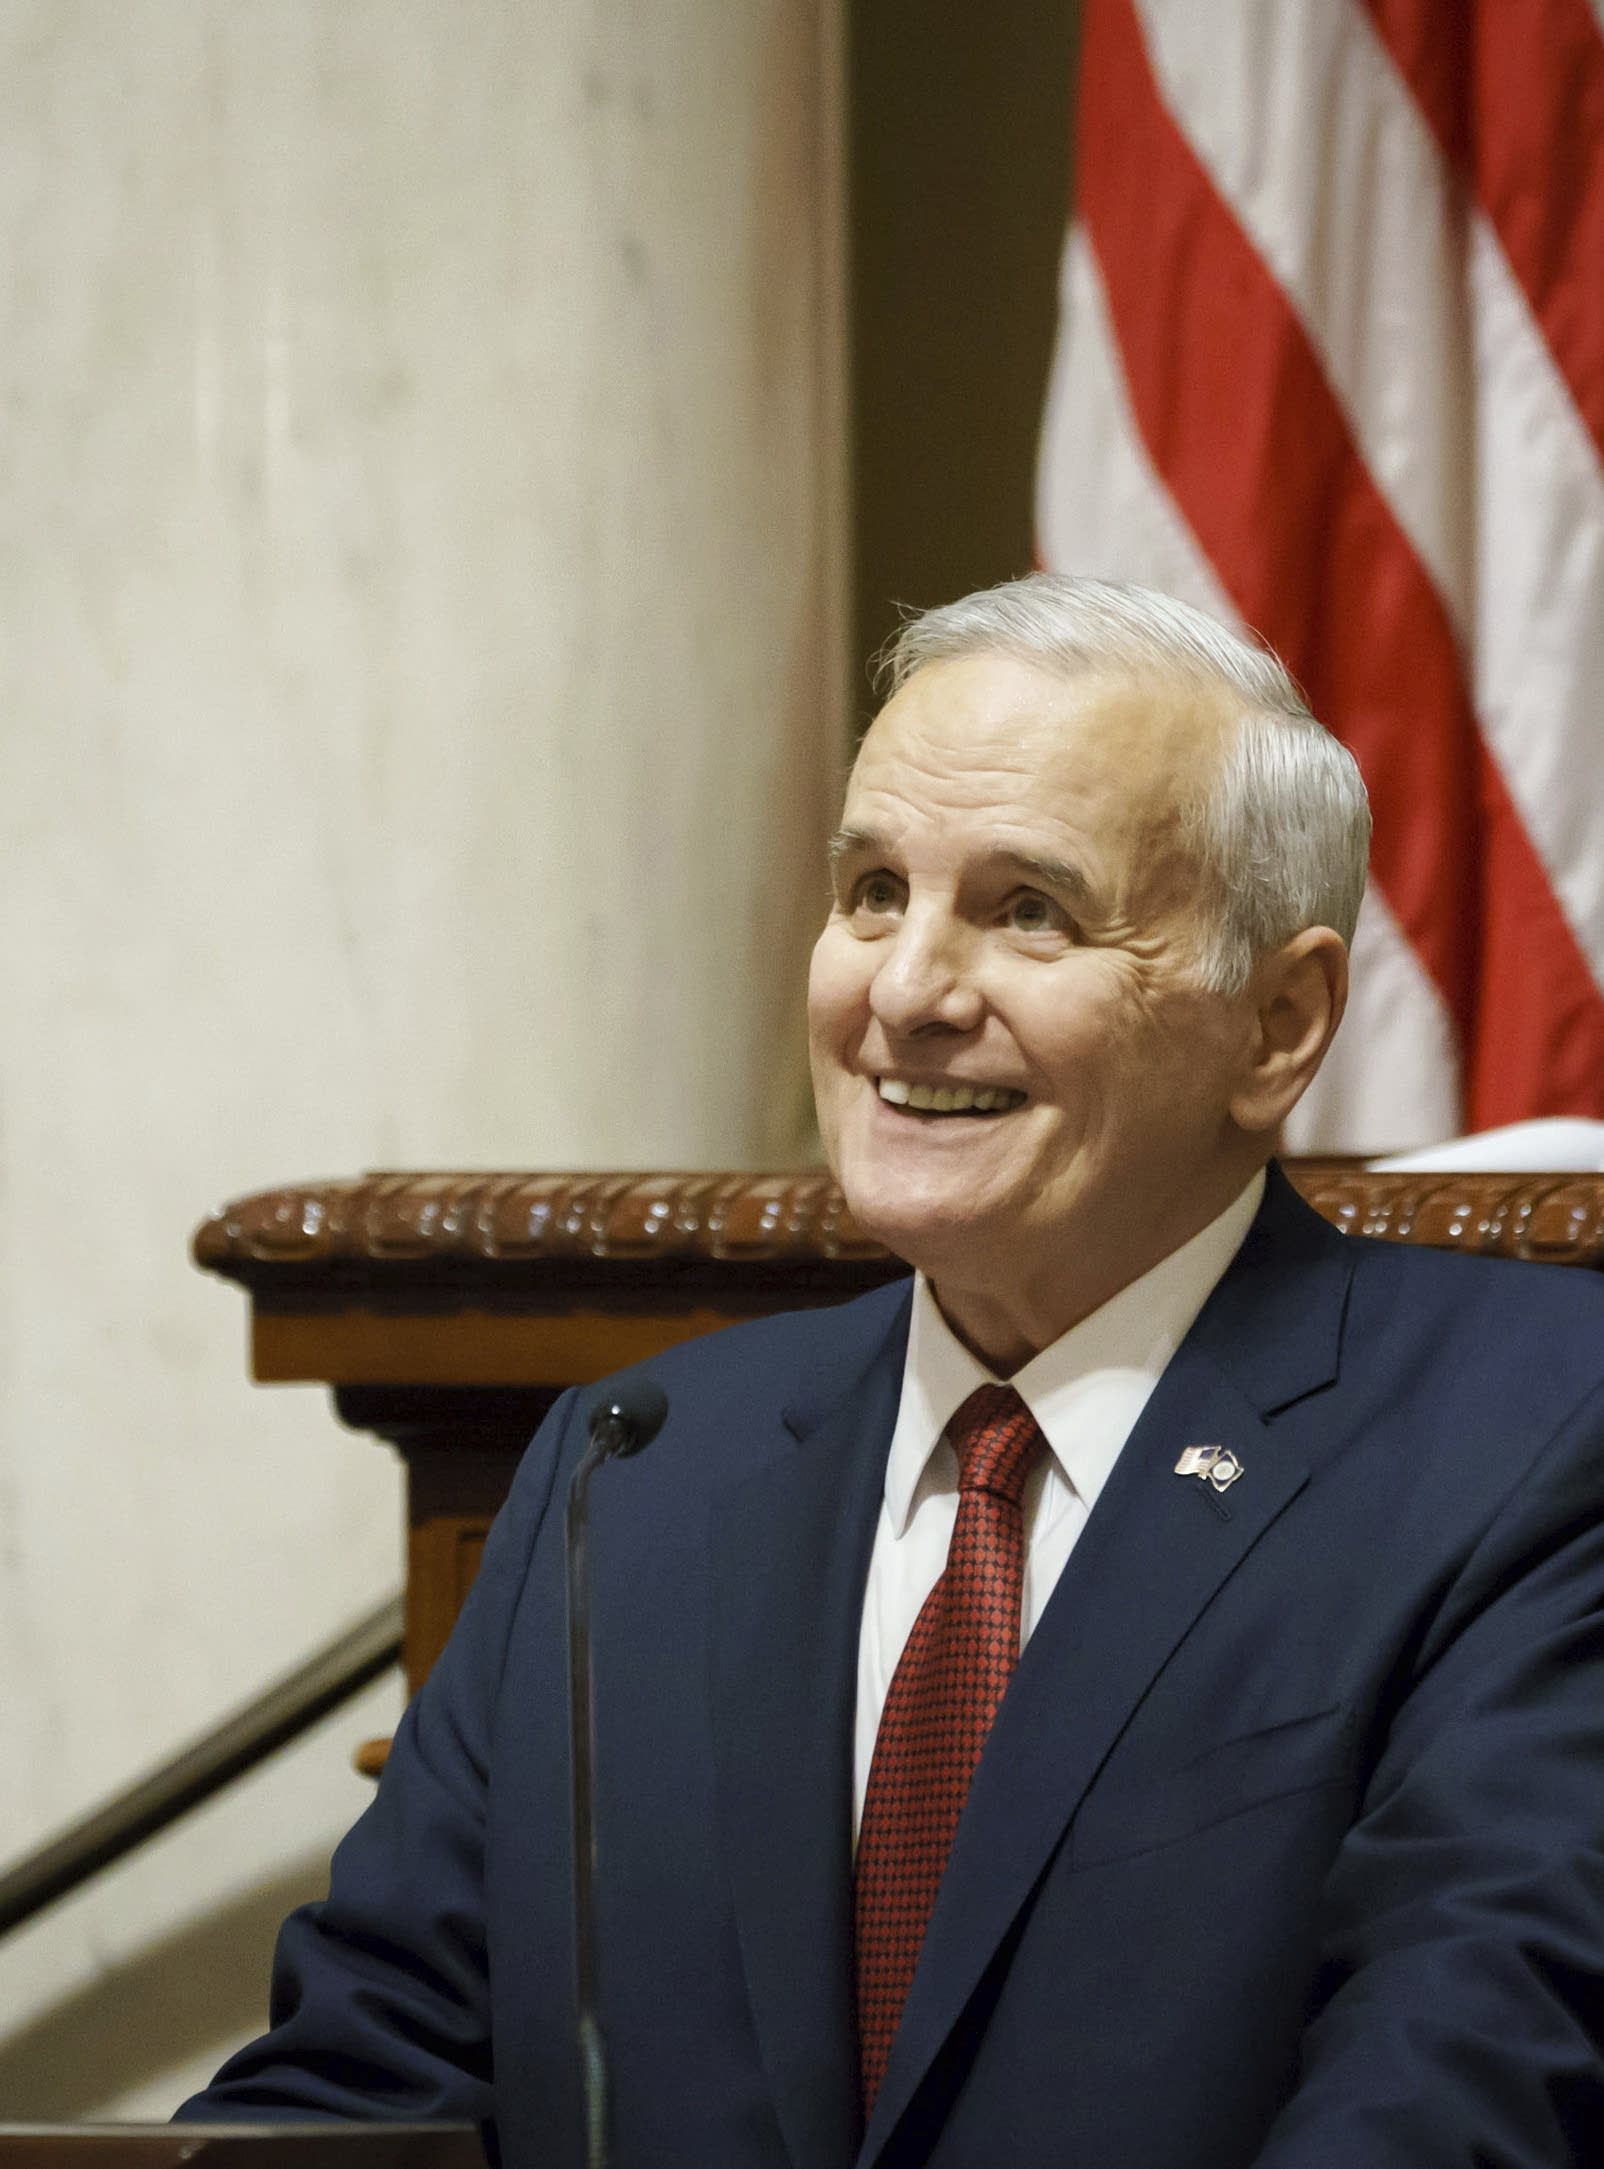 Mark Dayton delivers his final annual State of the State Address